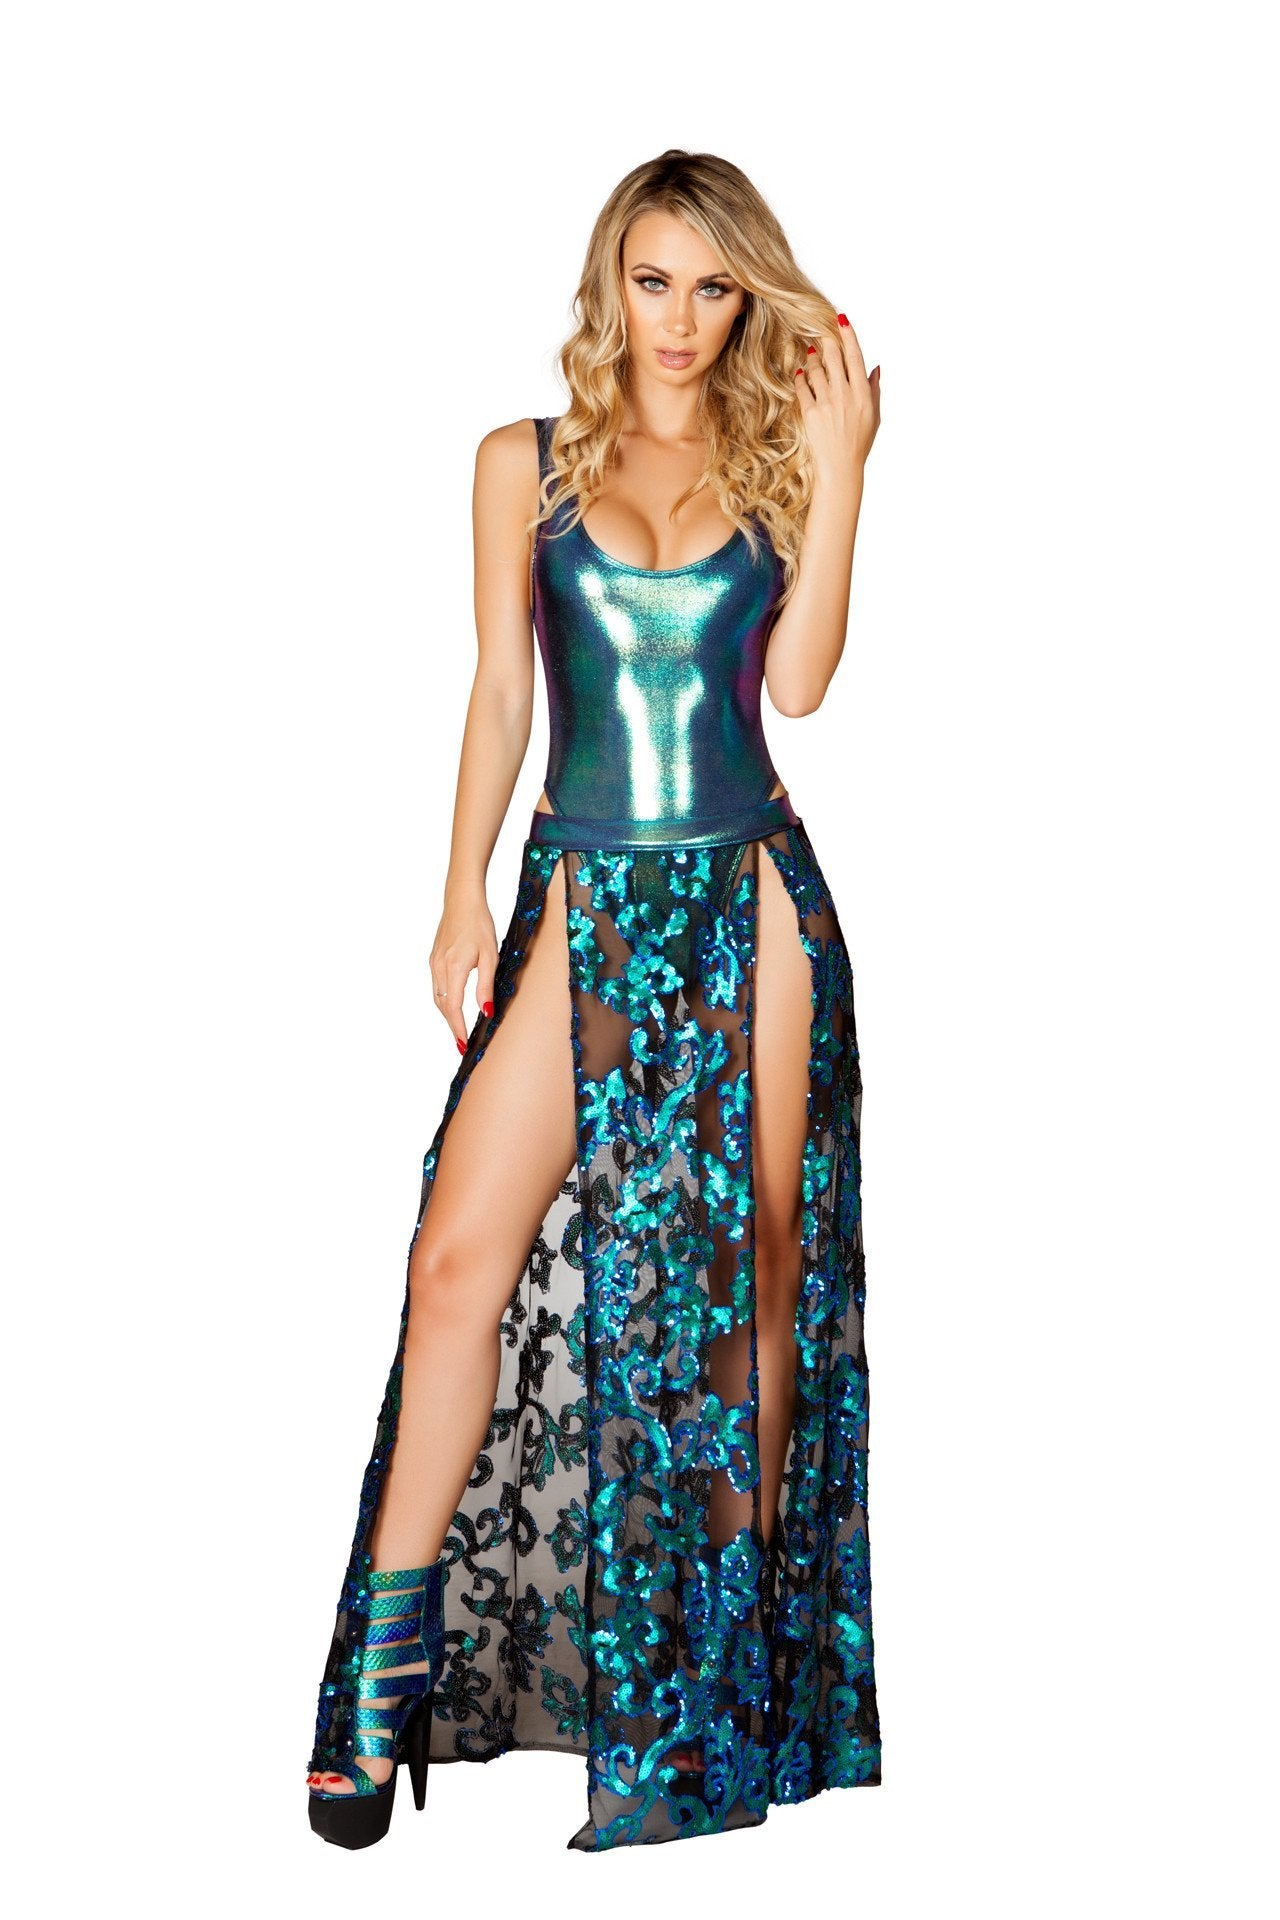 Rave Outfits, Rave Clothing For Women, Rave Clothes, Rave Bodysuits | RaverNationShop